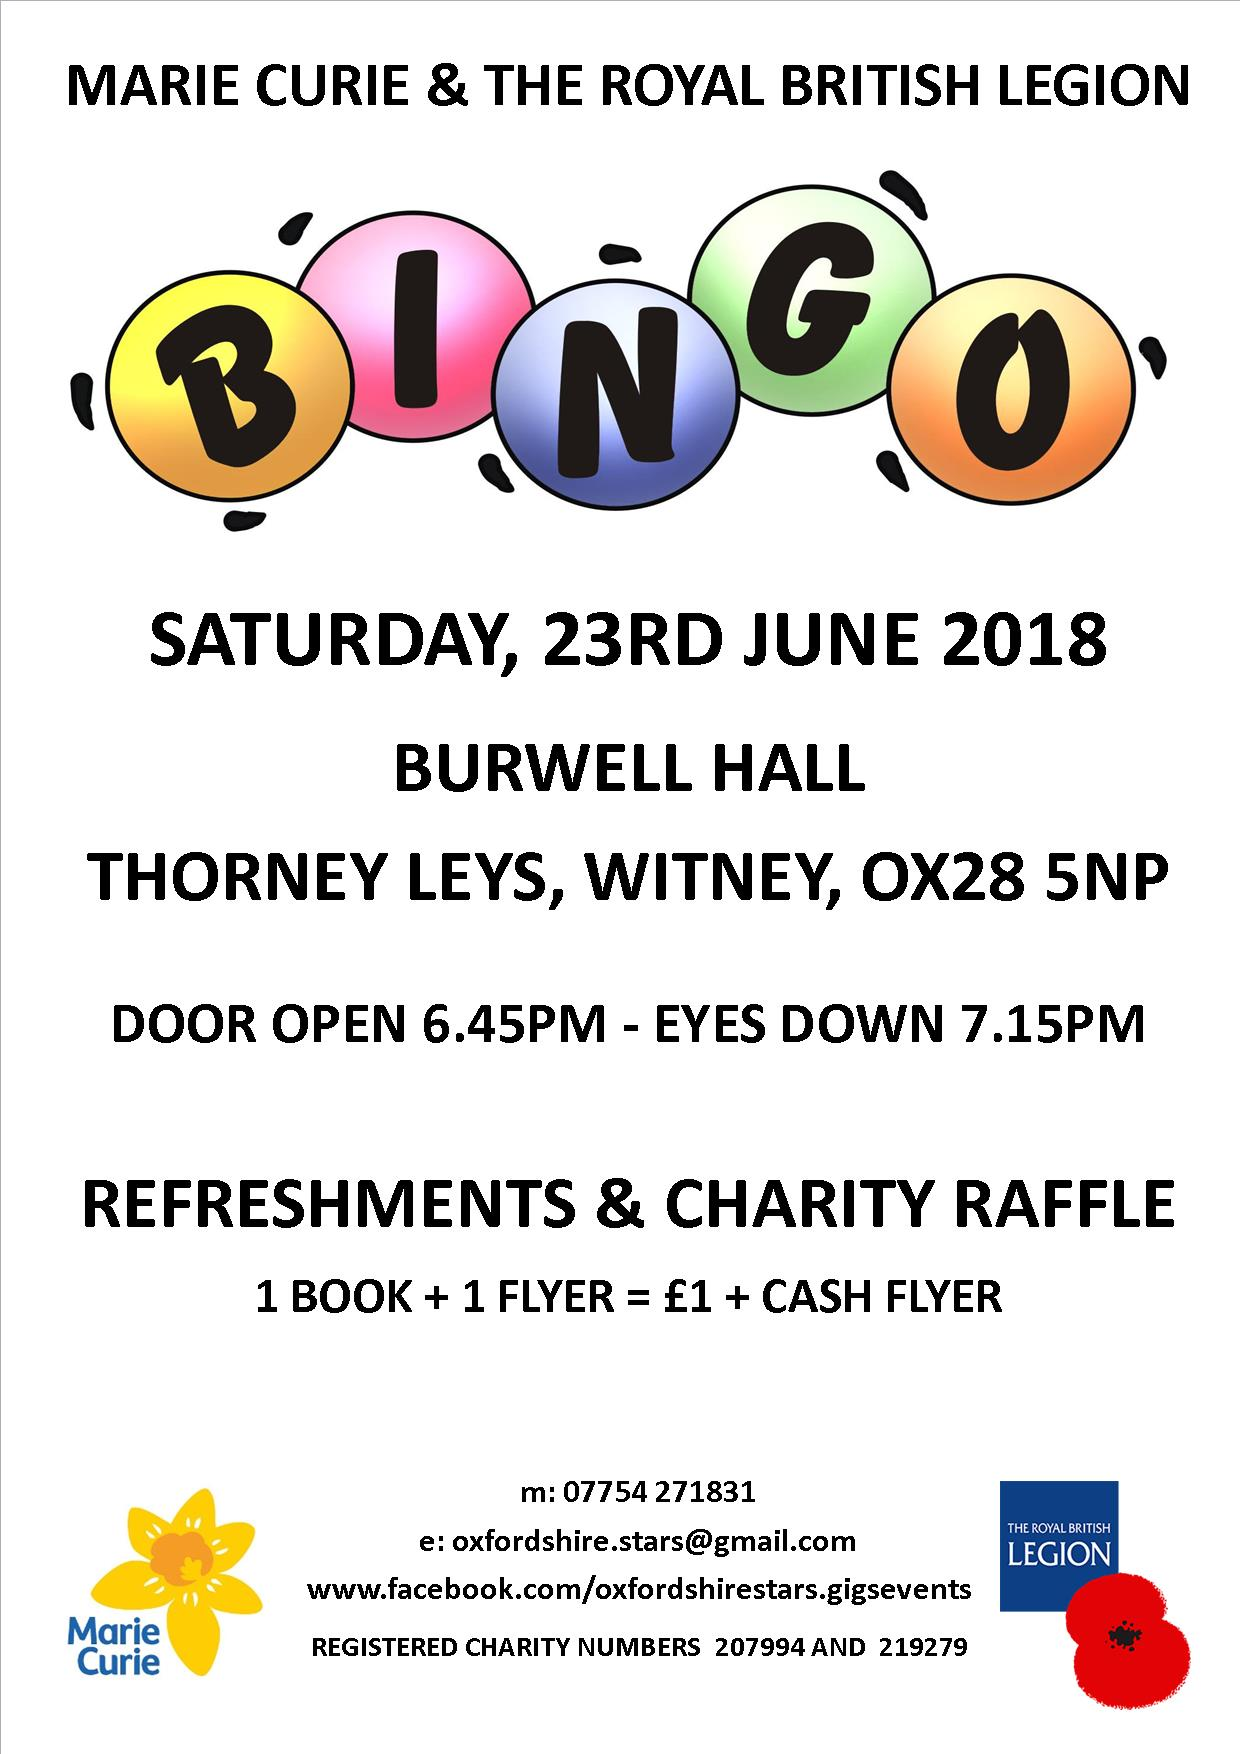 Bingo in aid of Marie Curie and The Royal British Legion